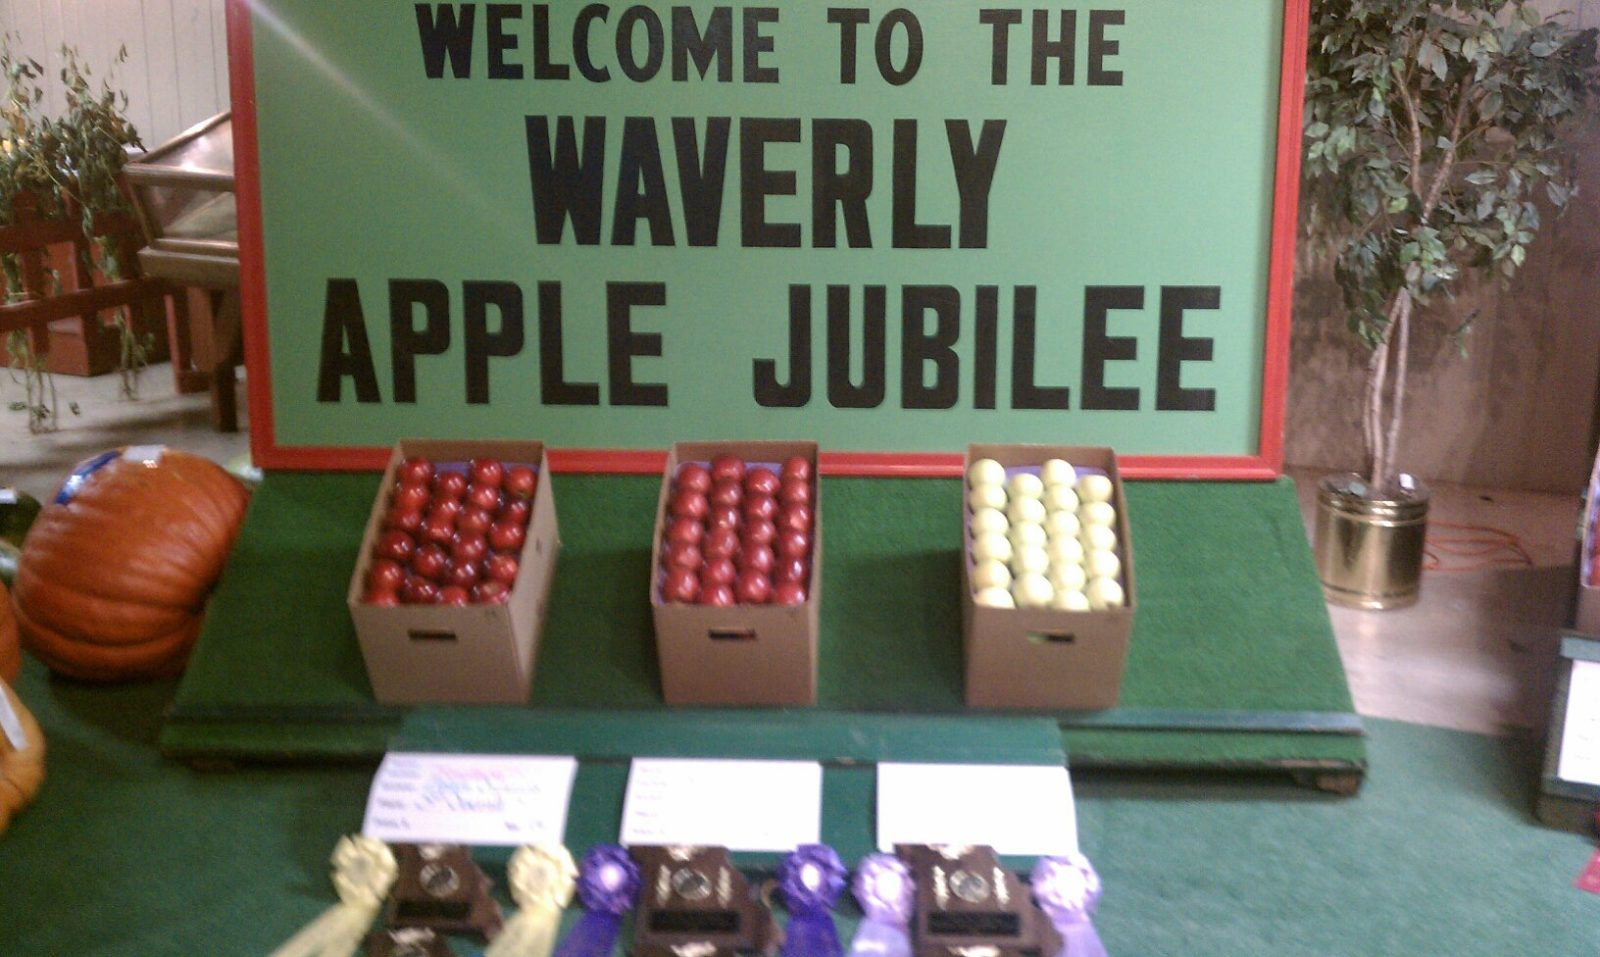 Waverly Apple Auction Results